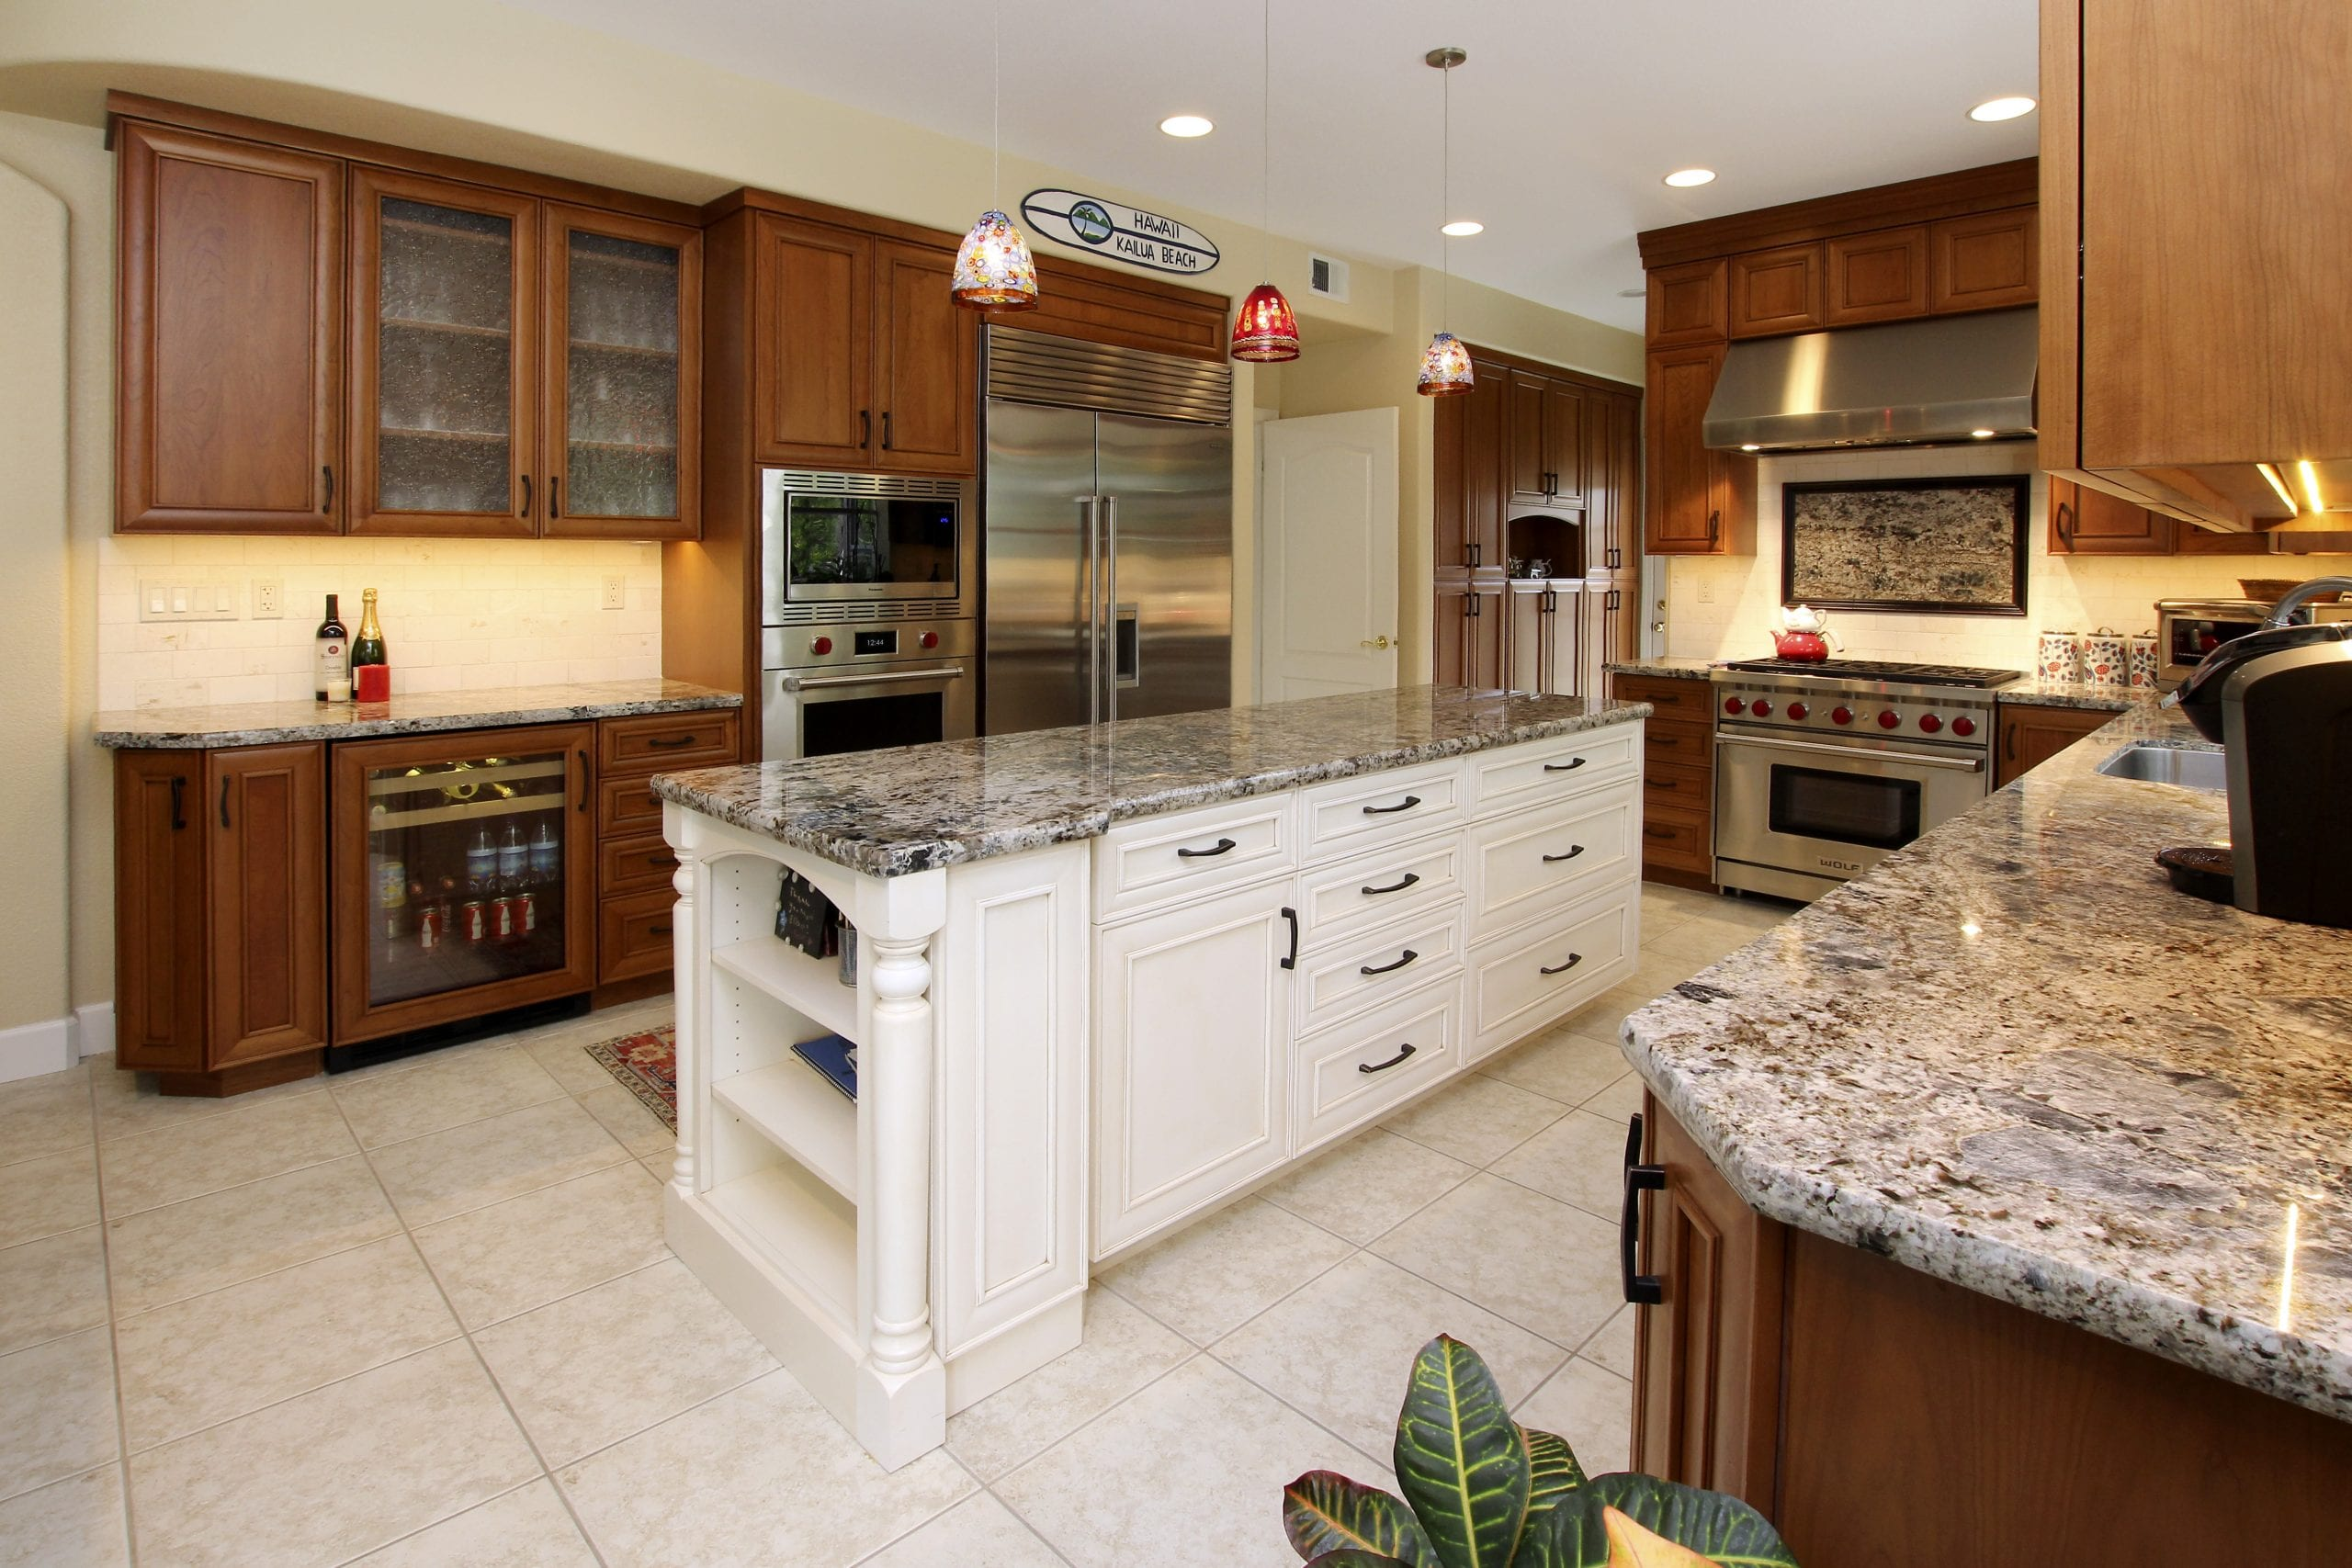 Epicurean kitchen remodel after photo